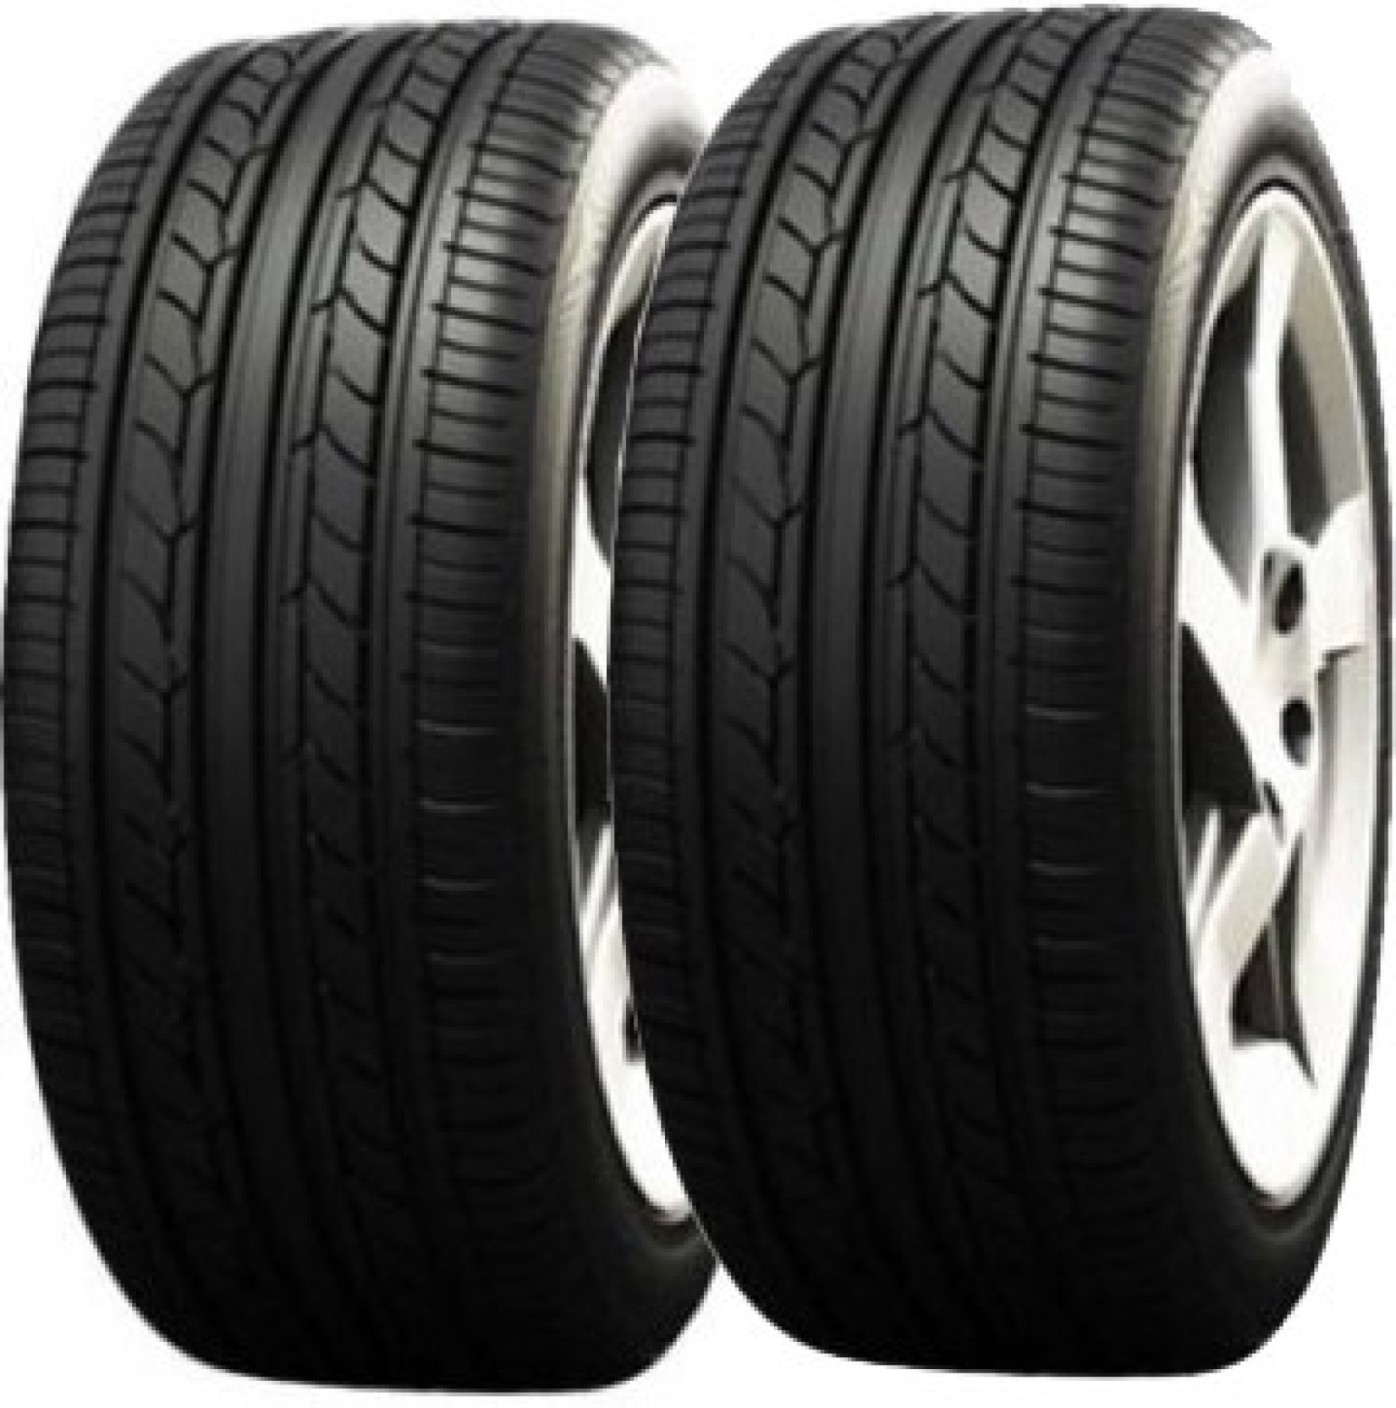 yokohama earth 1 185 65 r15 88h tubeless car tyre set of 2 4 wheeler tyre price in india buy. Black Bedroom Furniture Sets. Home Design Ideas